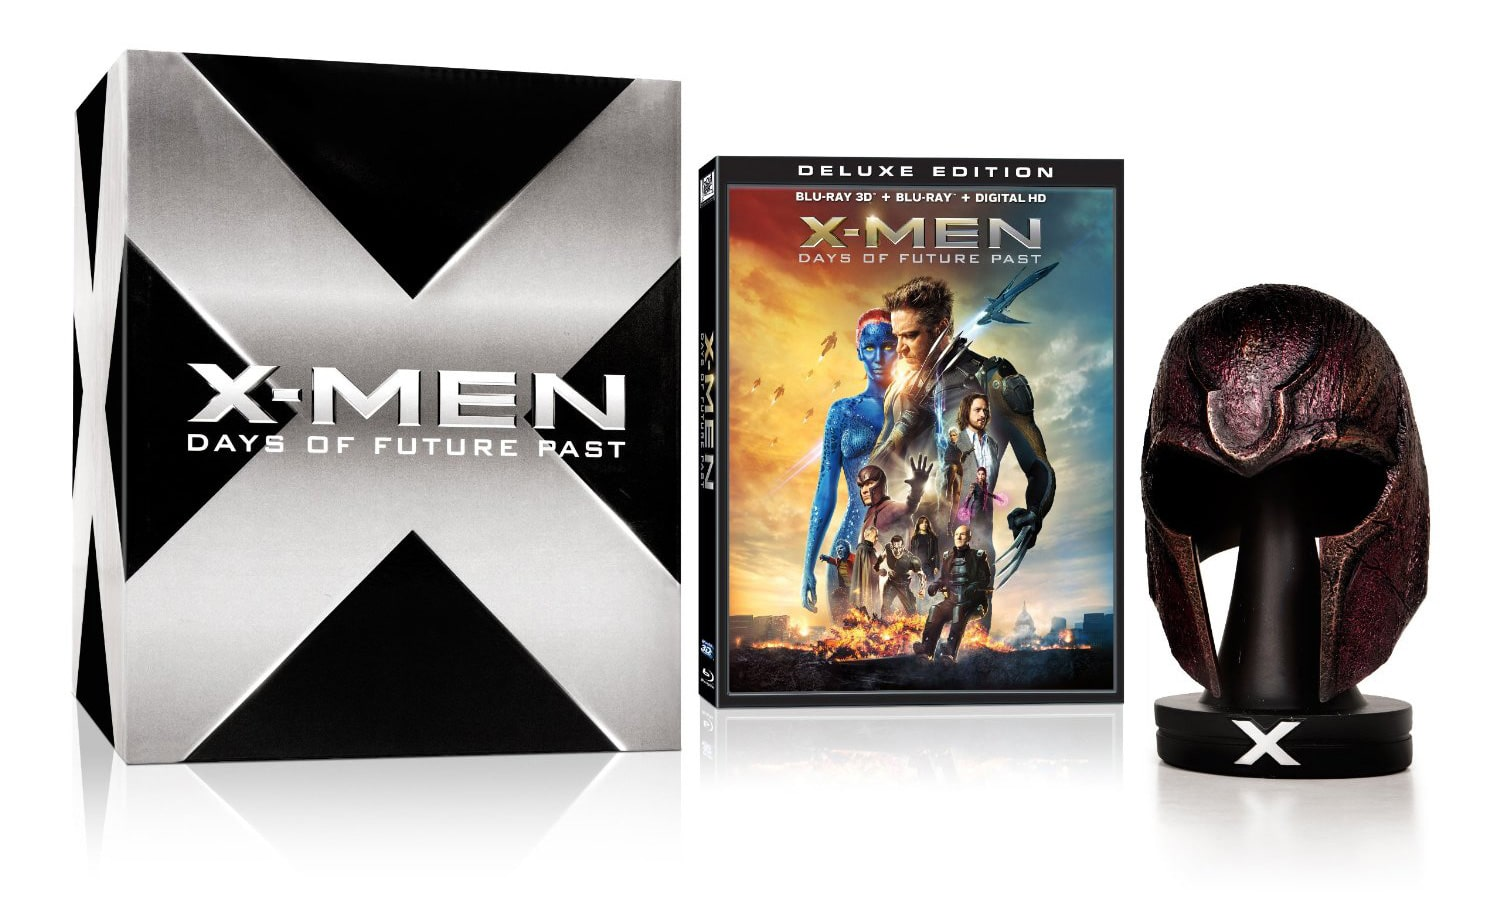 X-Men: Days of Future Past Amazon Exclusive Collectors Edition